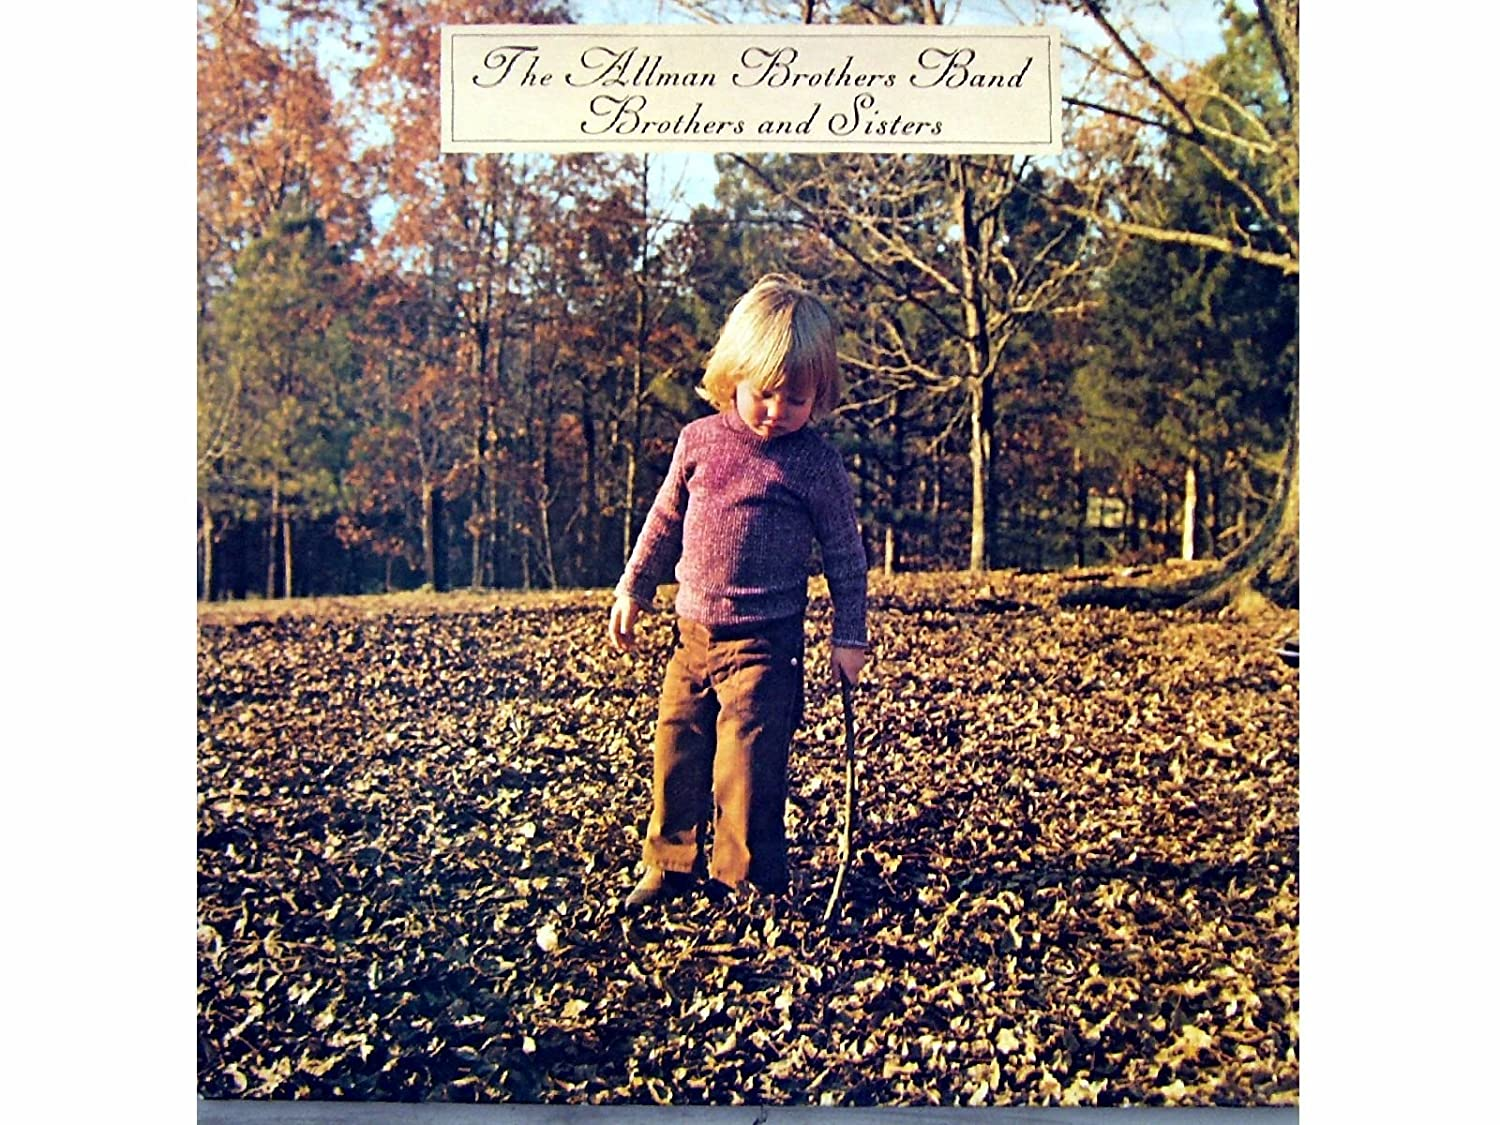 allman brothers band brothers and sisters com music